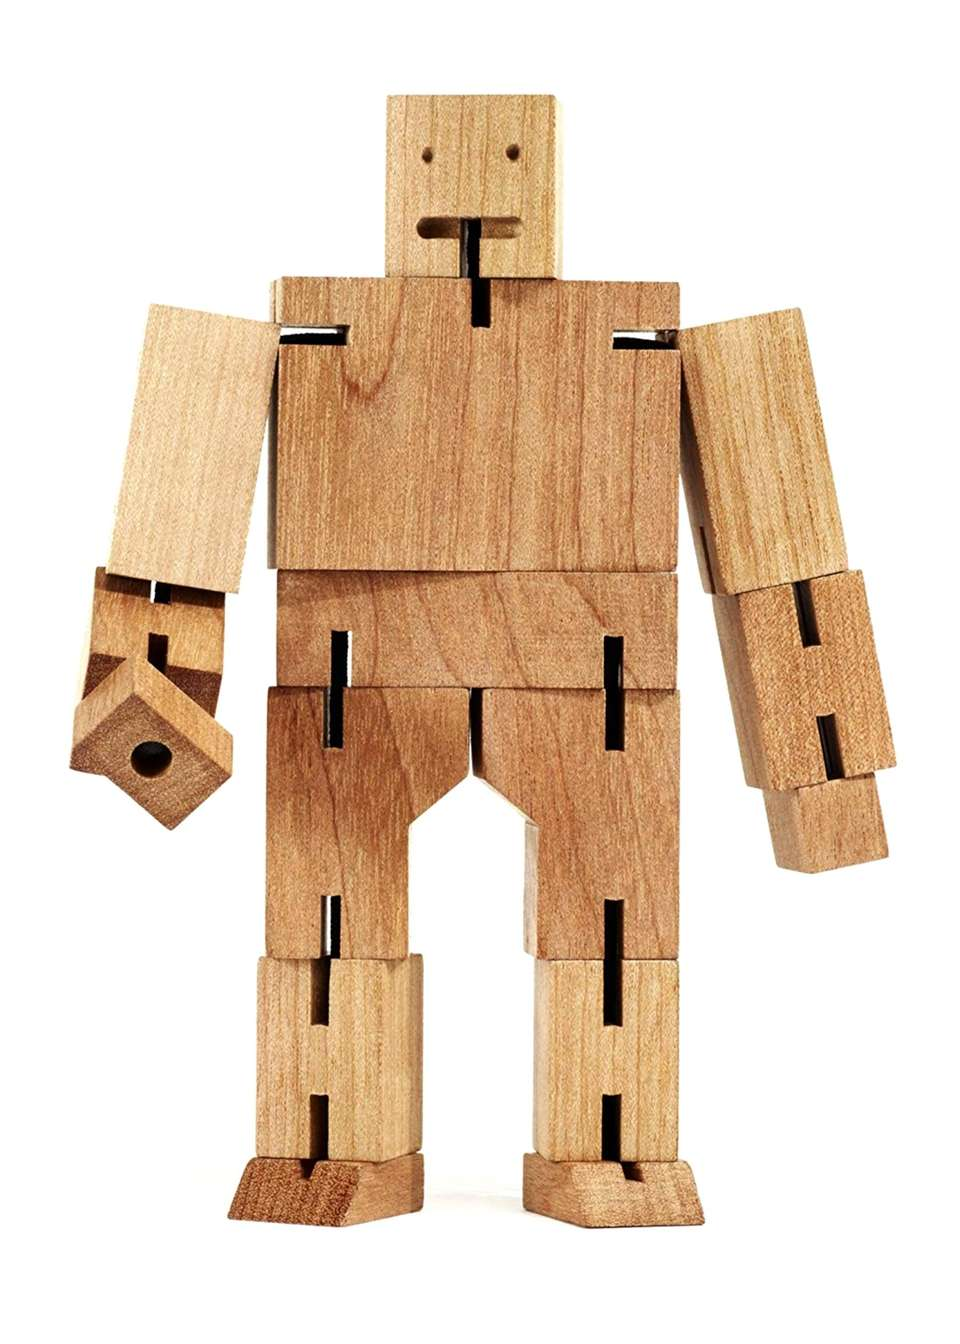 Crafted from harvested cherrywood, this figure can be